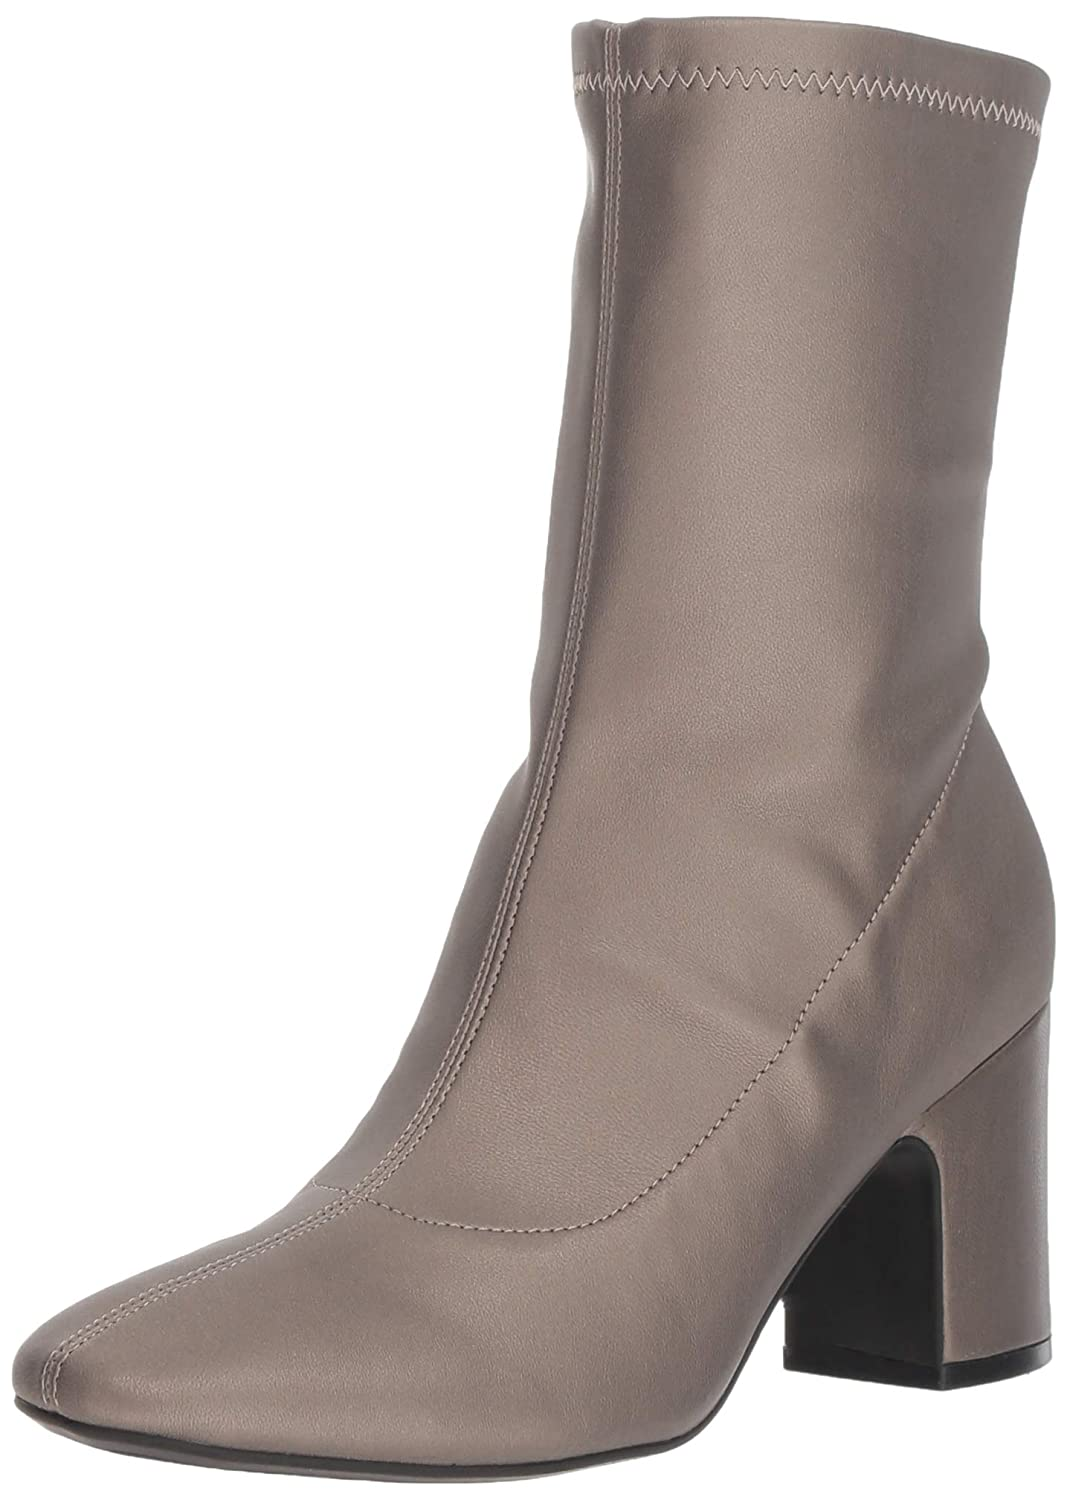 Pewter Aerosoles Womens Tall Grass Mid Calf Boot